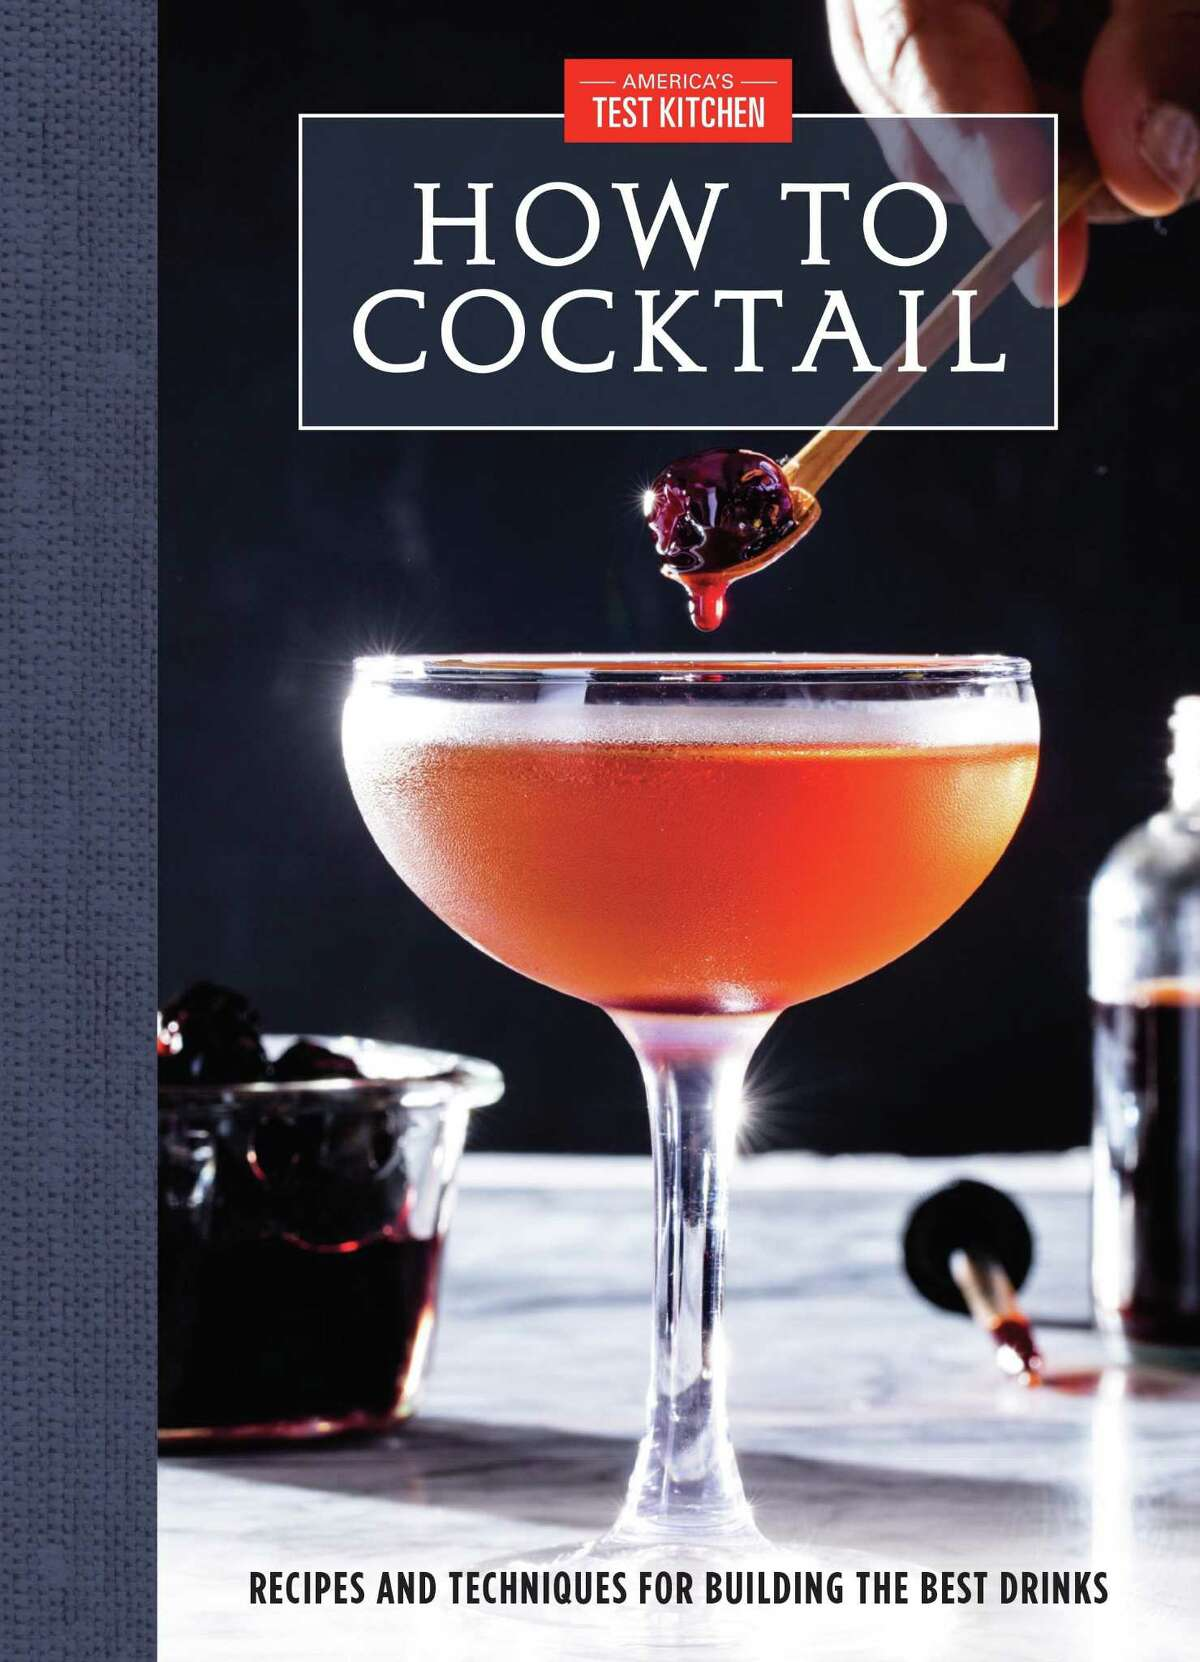 """""""How to Cocktail: Recipes and Techniques for Building the best drinks,"""" by the editors of America's Test Kitchen (2019, $24.99)"""